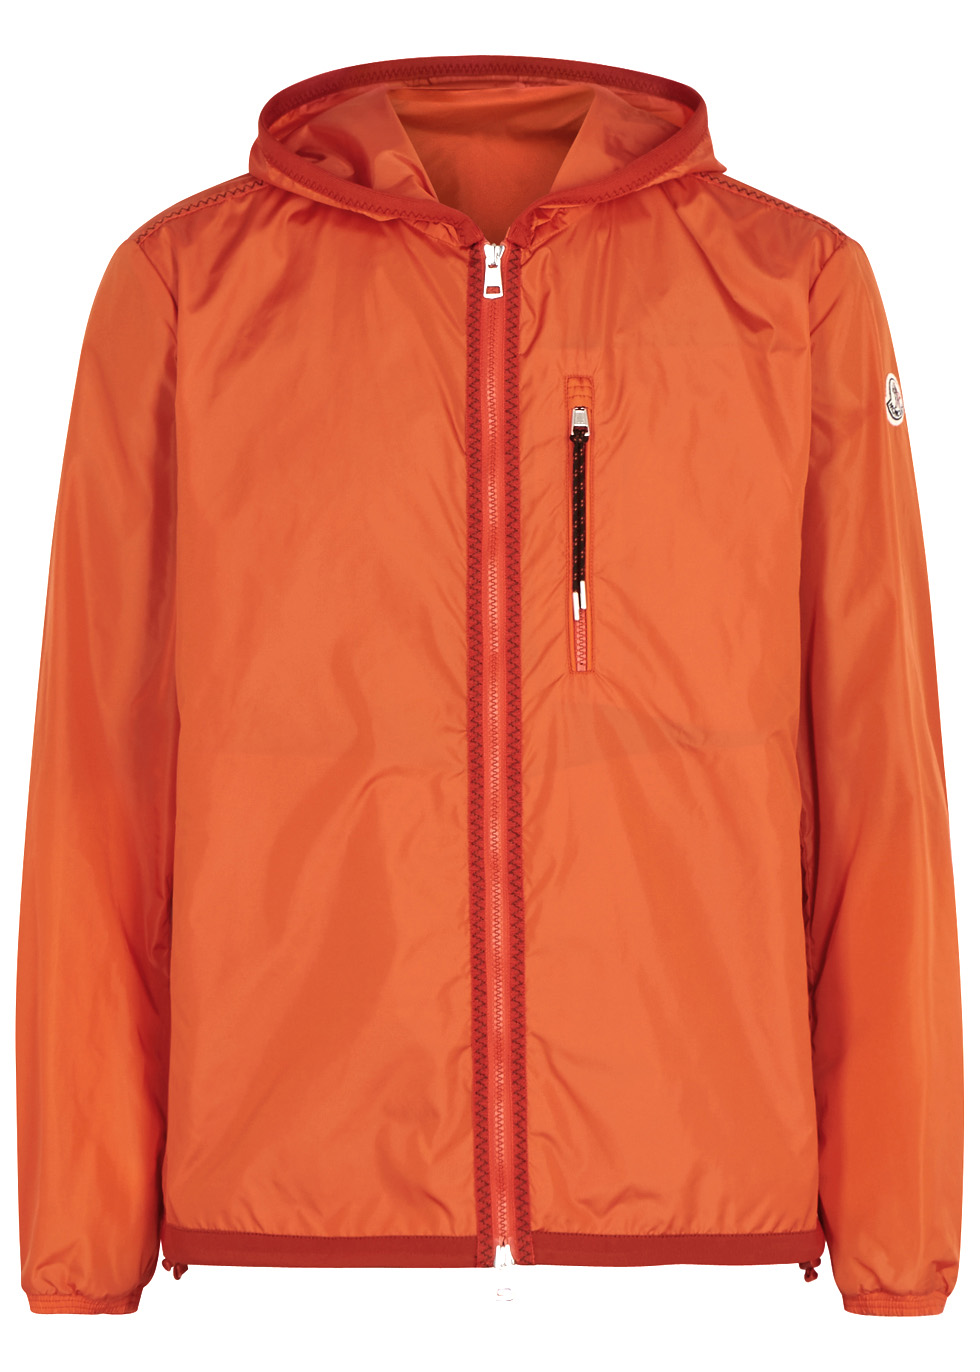 Sylvamar orange hooded shell jacket - Moncler